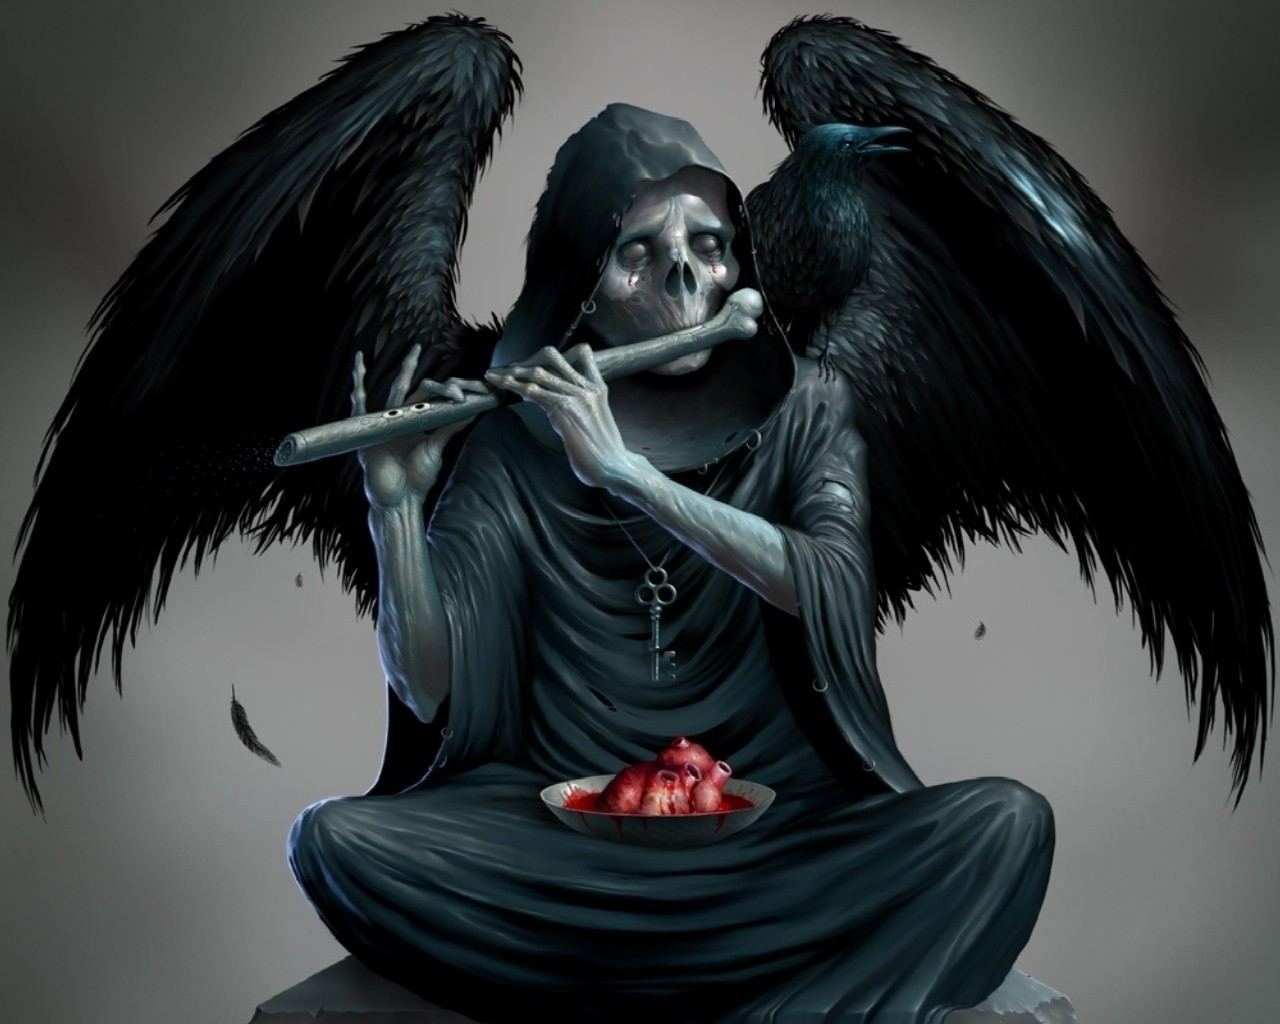 Wings Death Skeletons Sitting Hearts Keys Playing Music